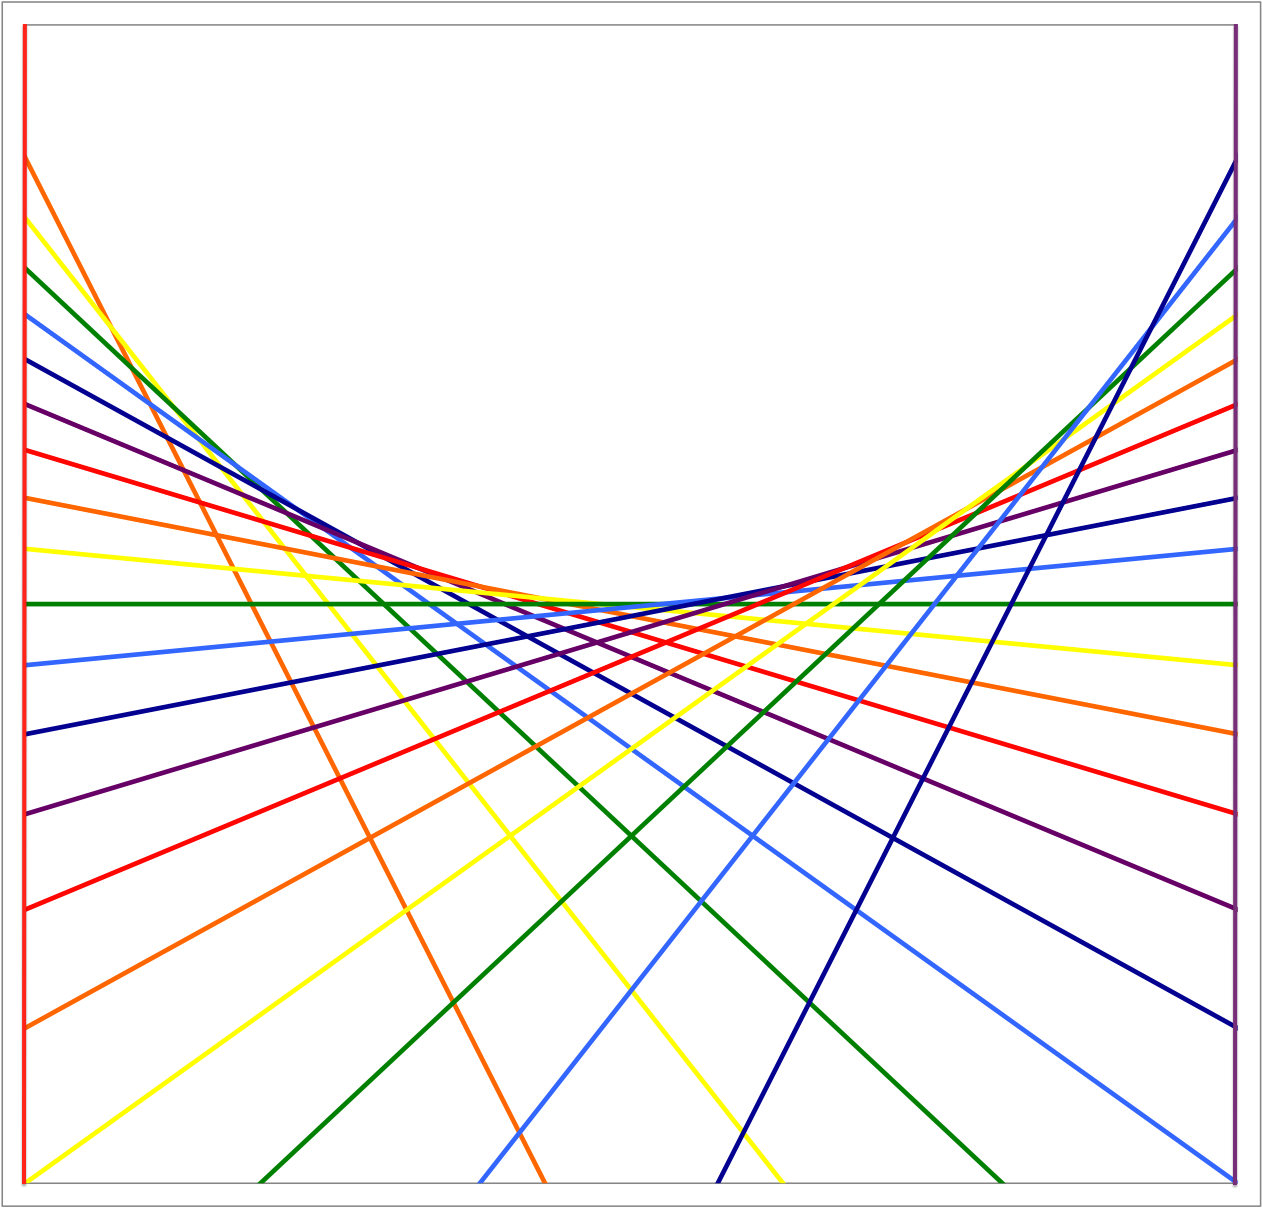 Math Year Tangents Of The Lower Half Of A Circle